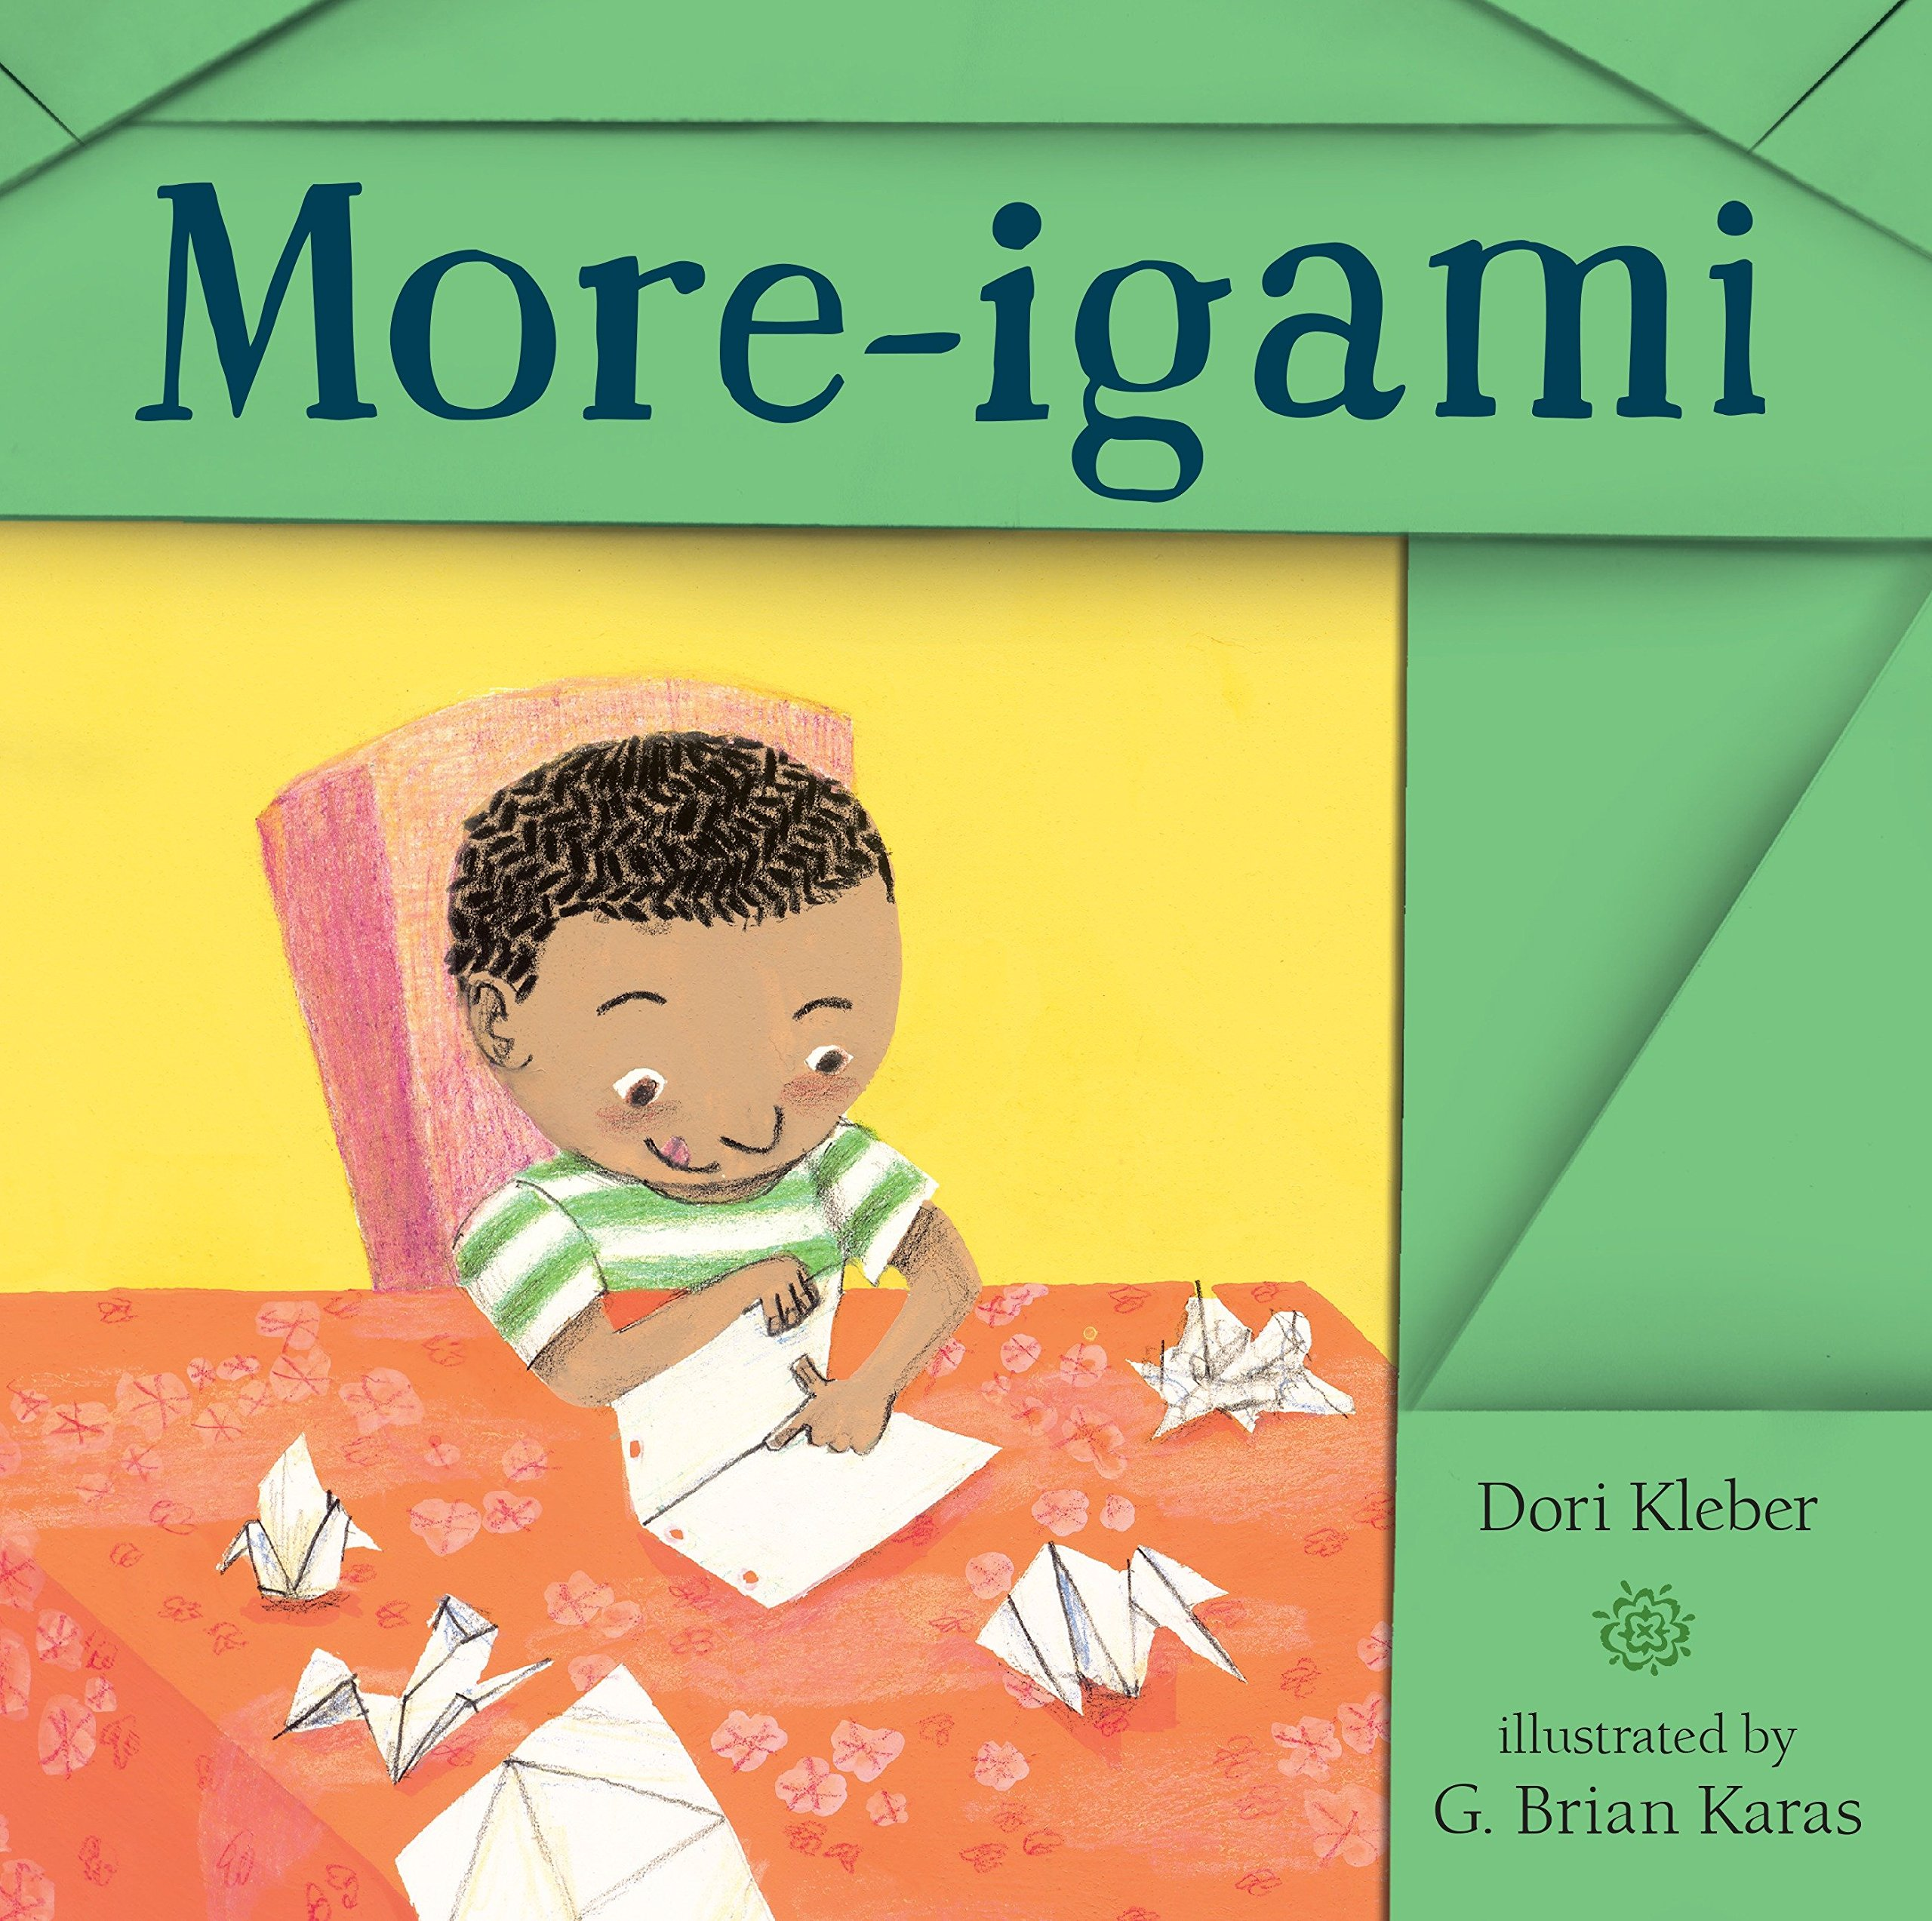 Amazon.com: More-igami (9780763668198): Kleber, Dori, Karas, G. Brian: Books